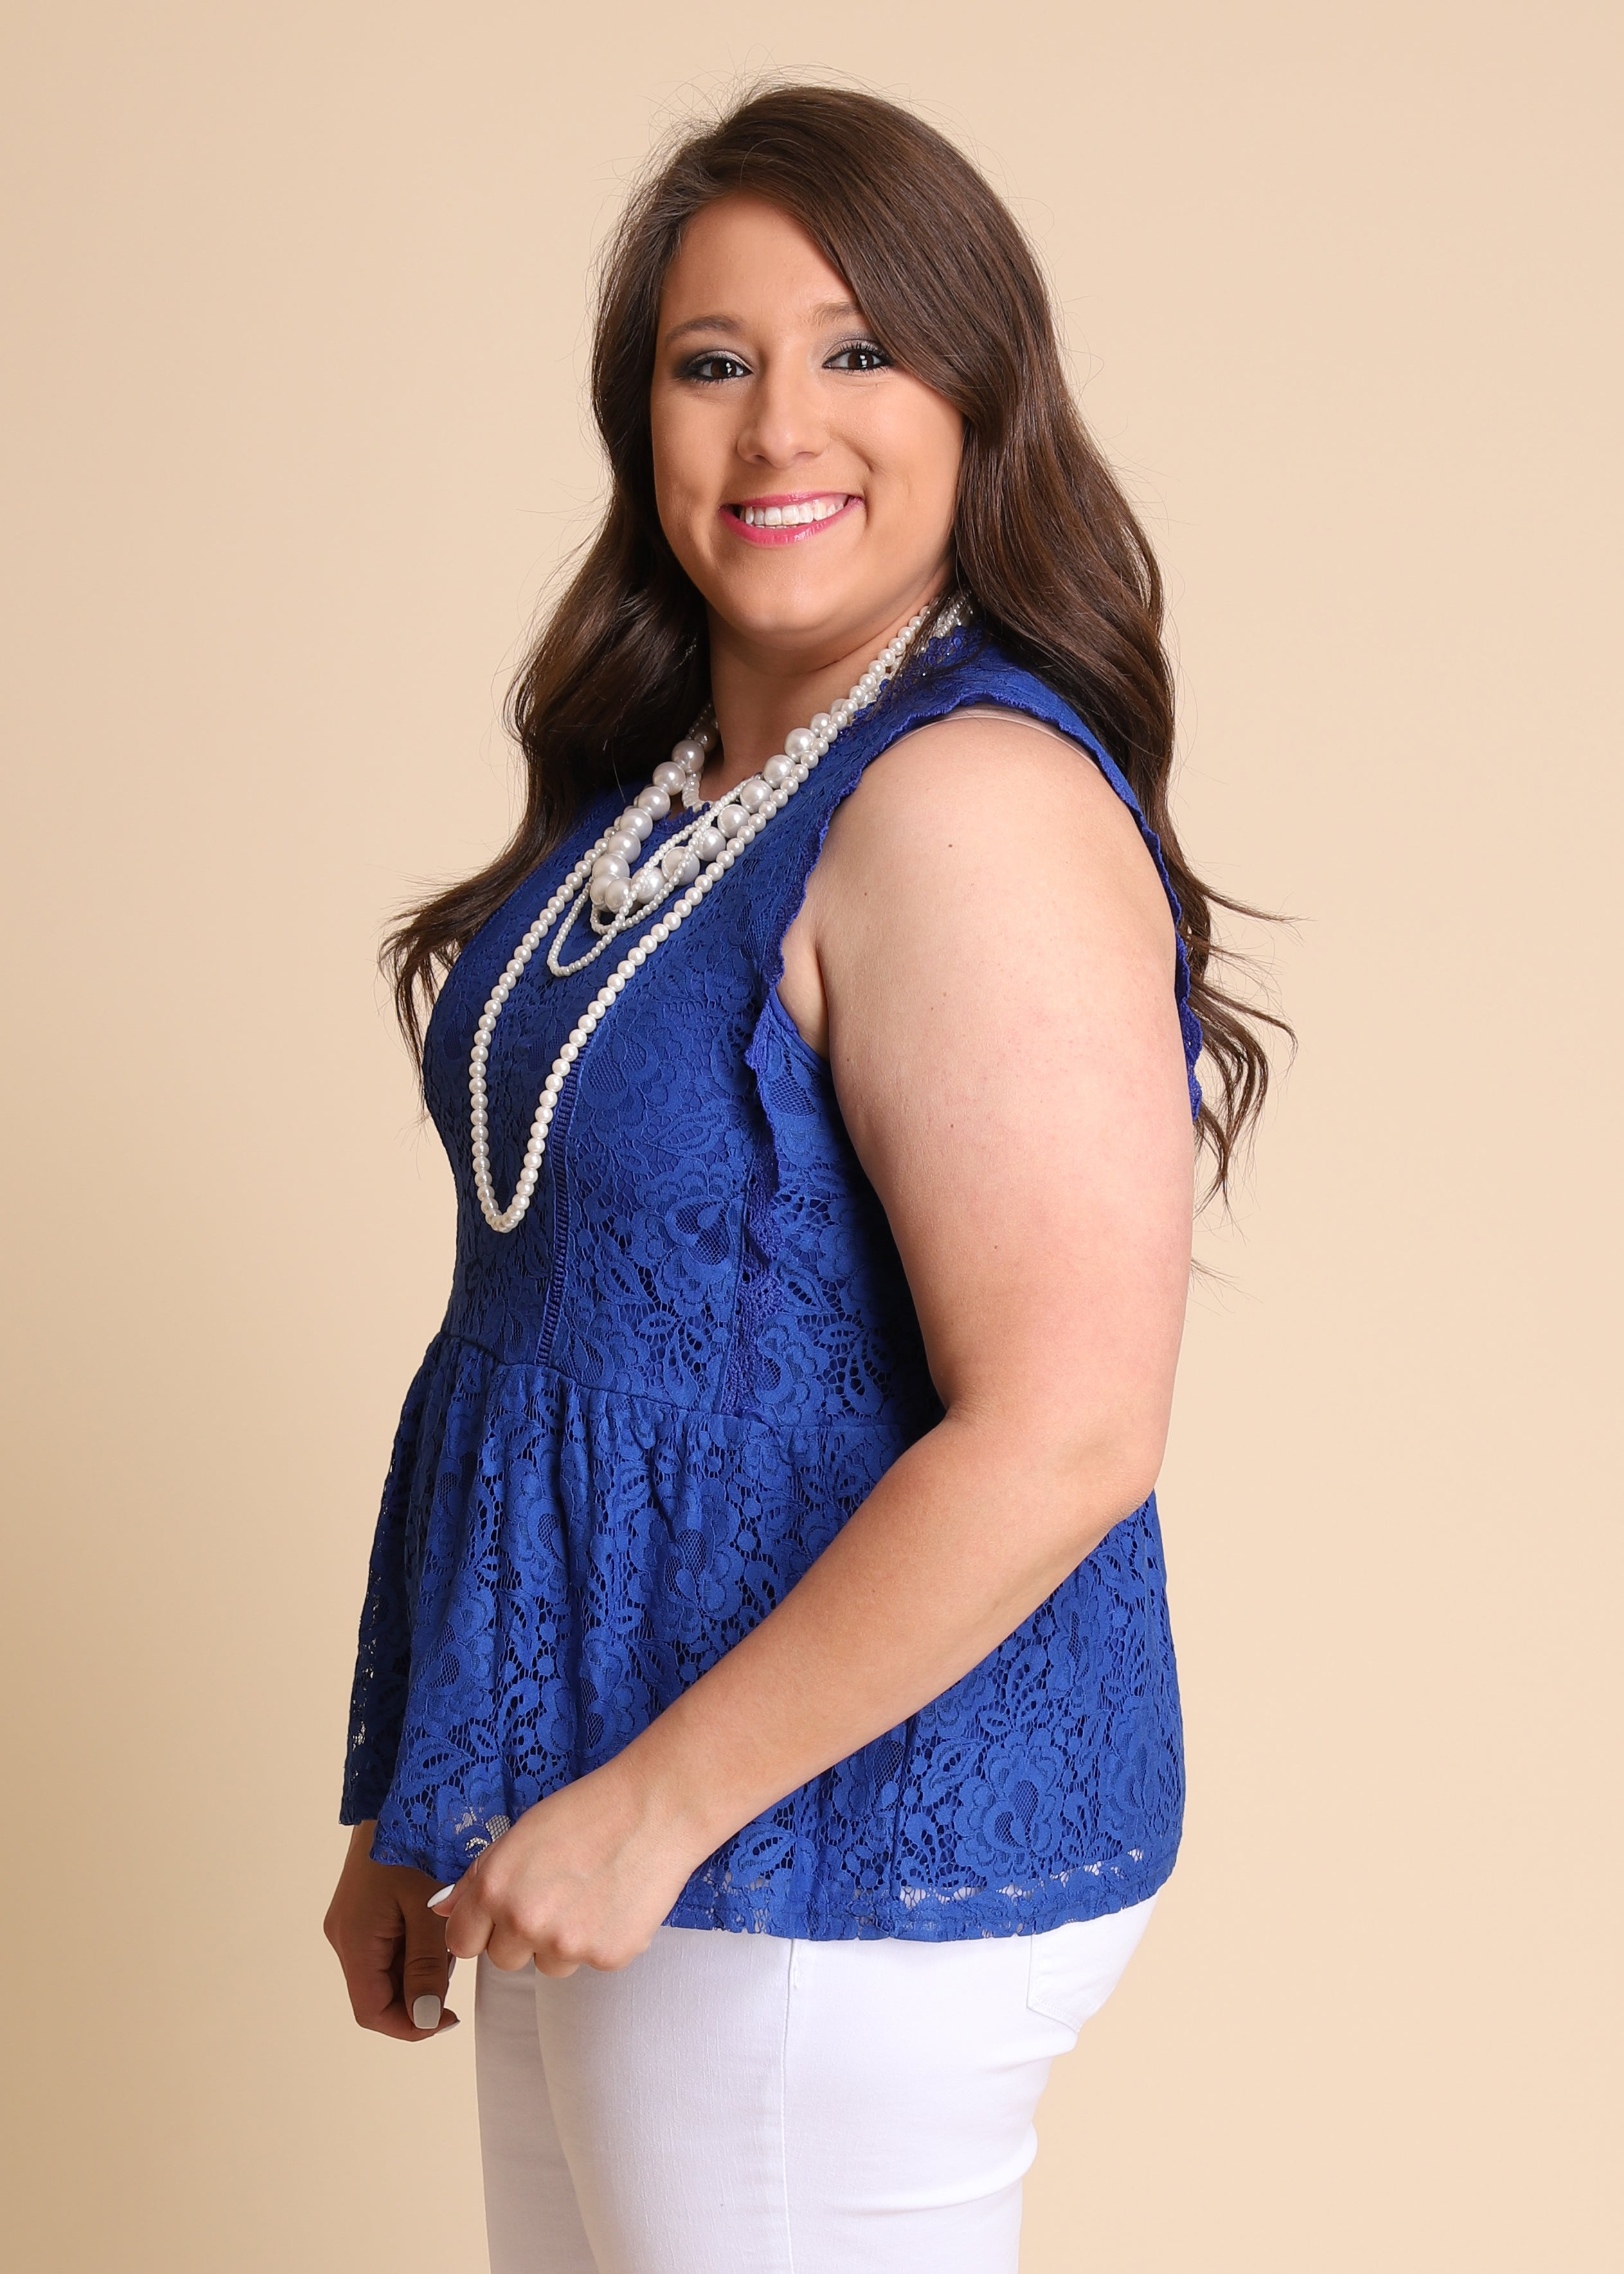 Royally Yours Lace Top FINAL SALE